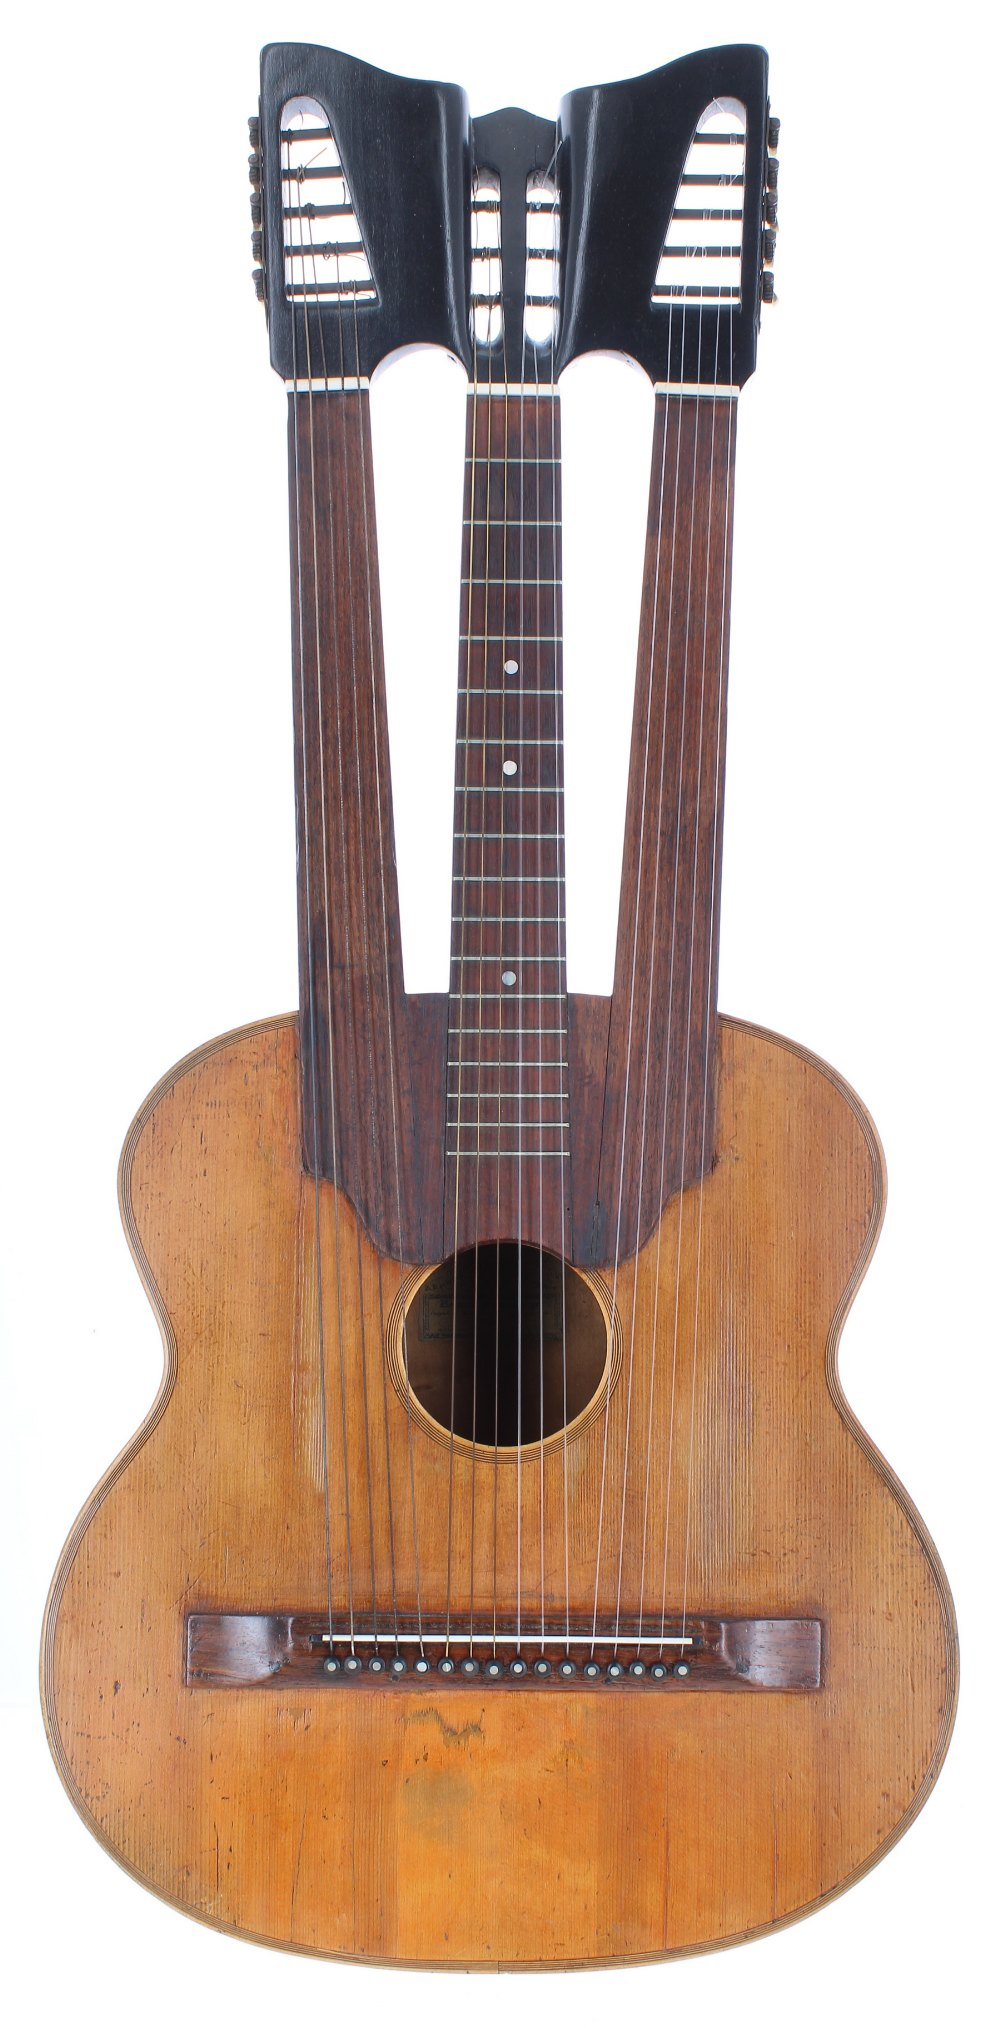 Triple-necked guitar in the style of Bernard Enzensperger, the one piece back and ribs of